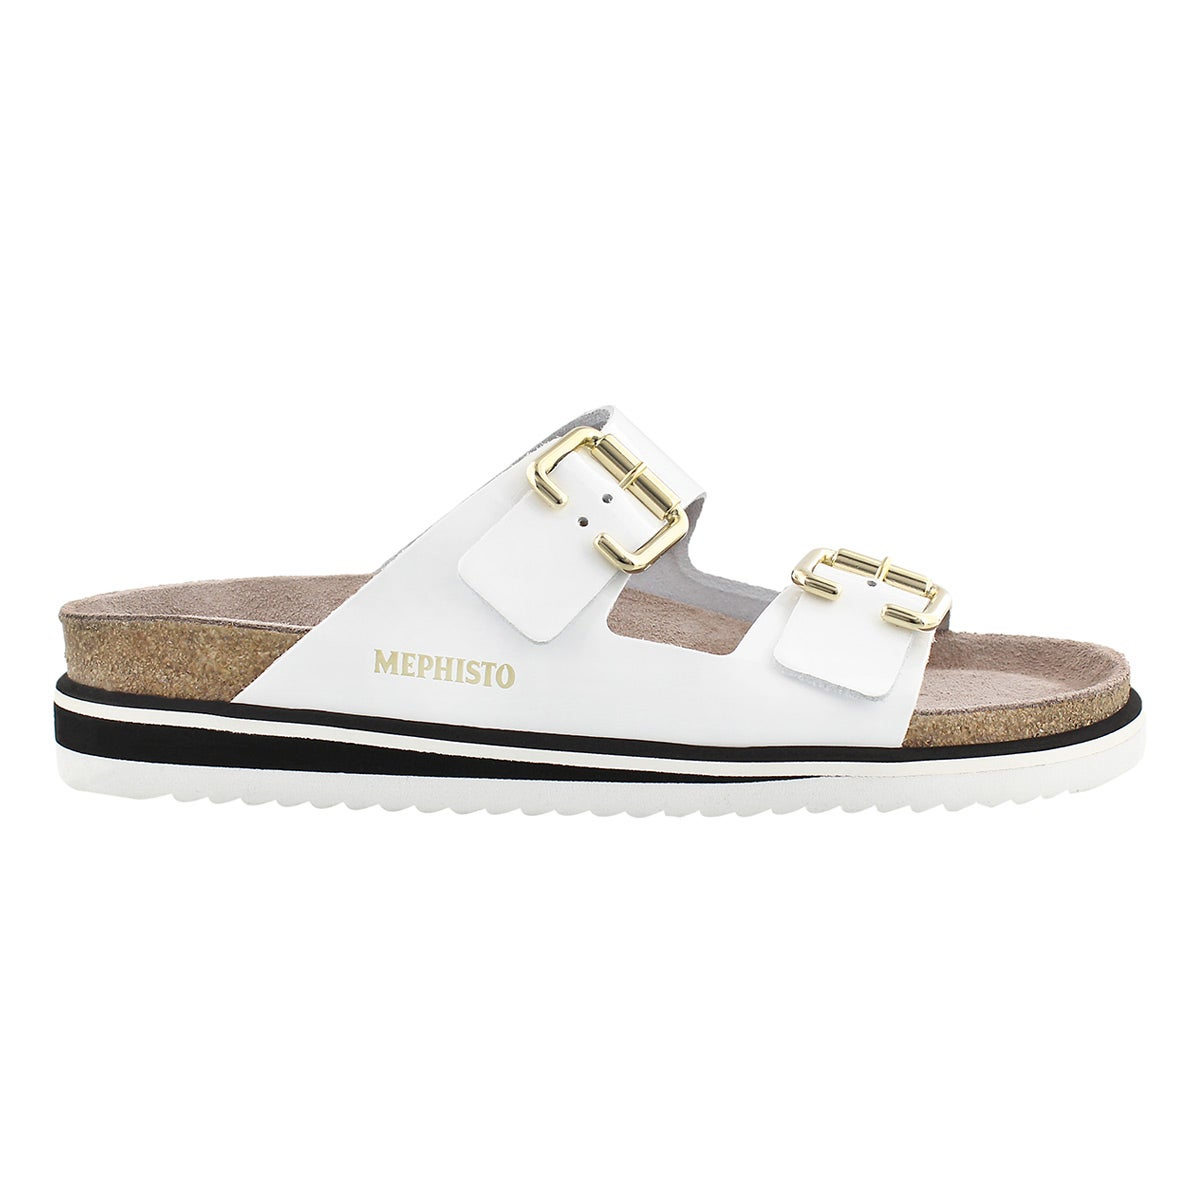 Lds Sandie white pat cork footbed sandal